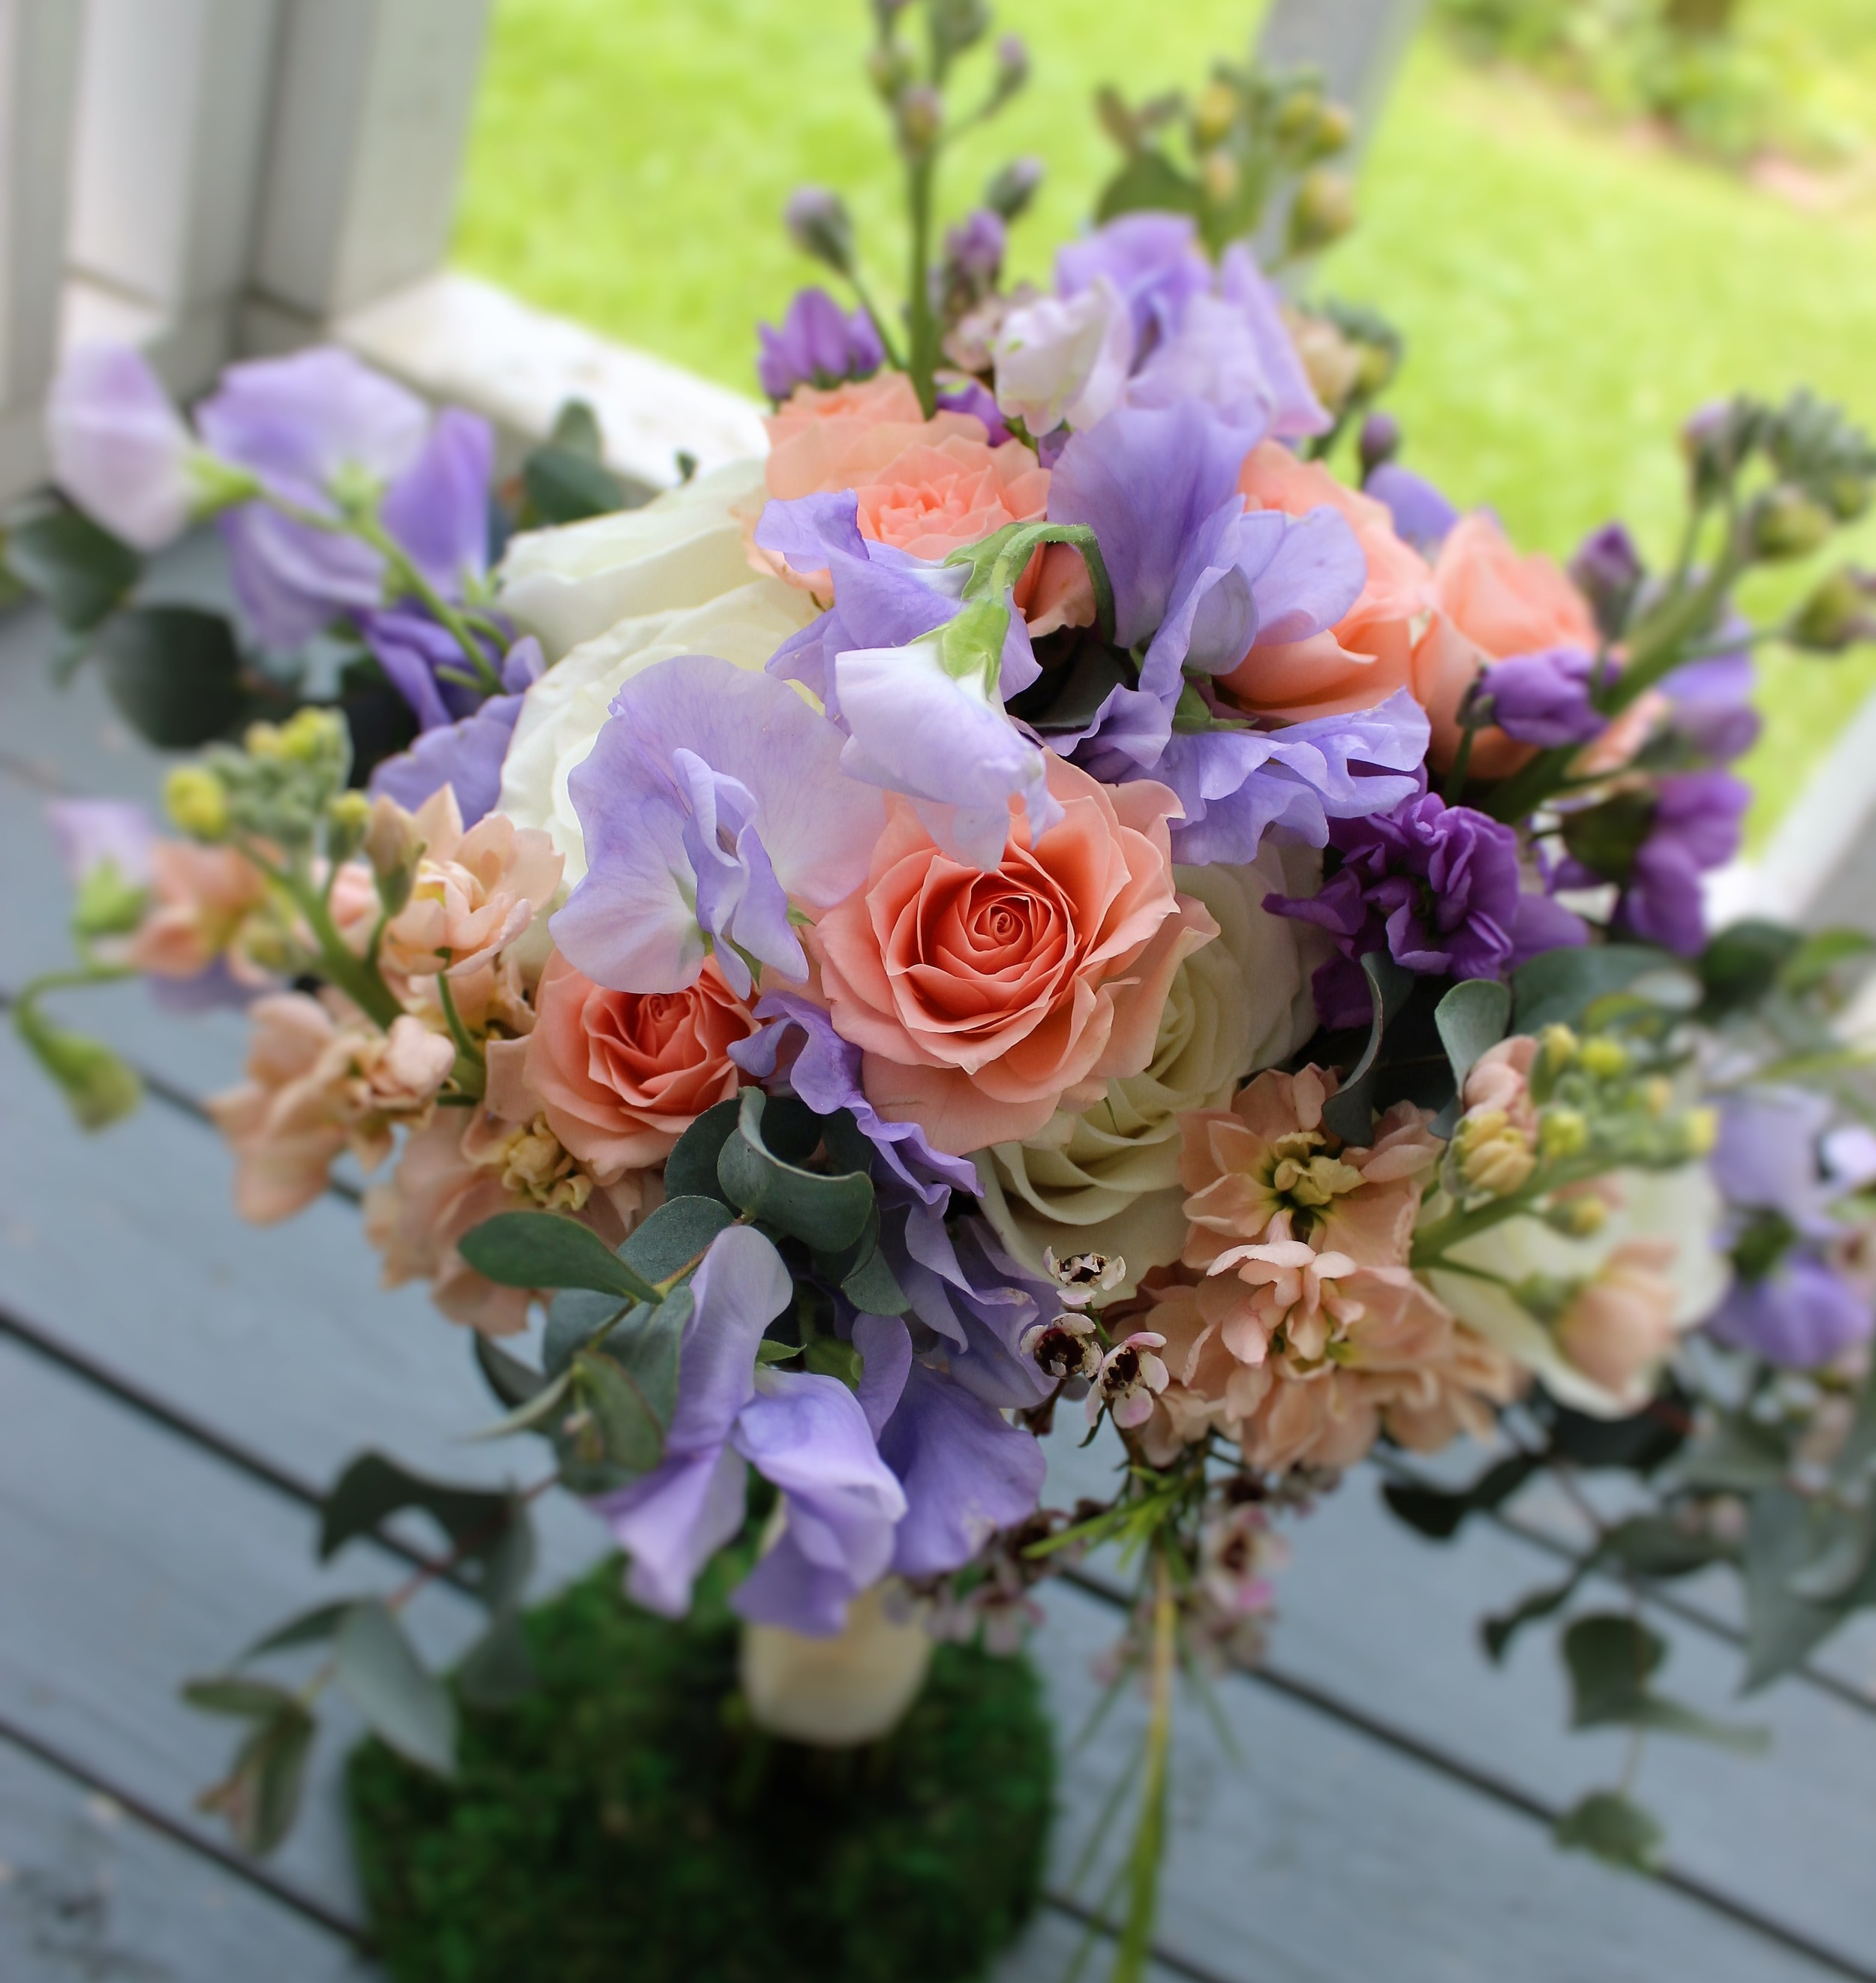 For the bridesmaids, the bride chose a smaller version of her bouquet. Just look at that dainty sweet pea in the center!   Photo by The Floral Cottage